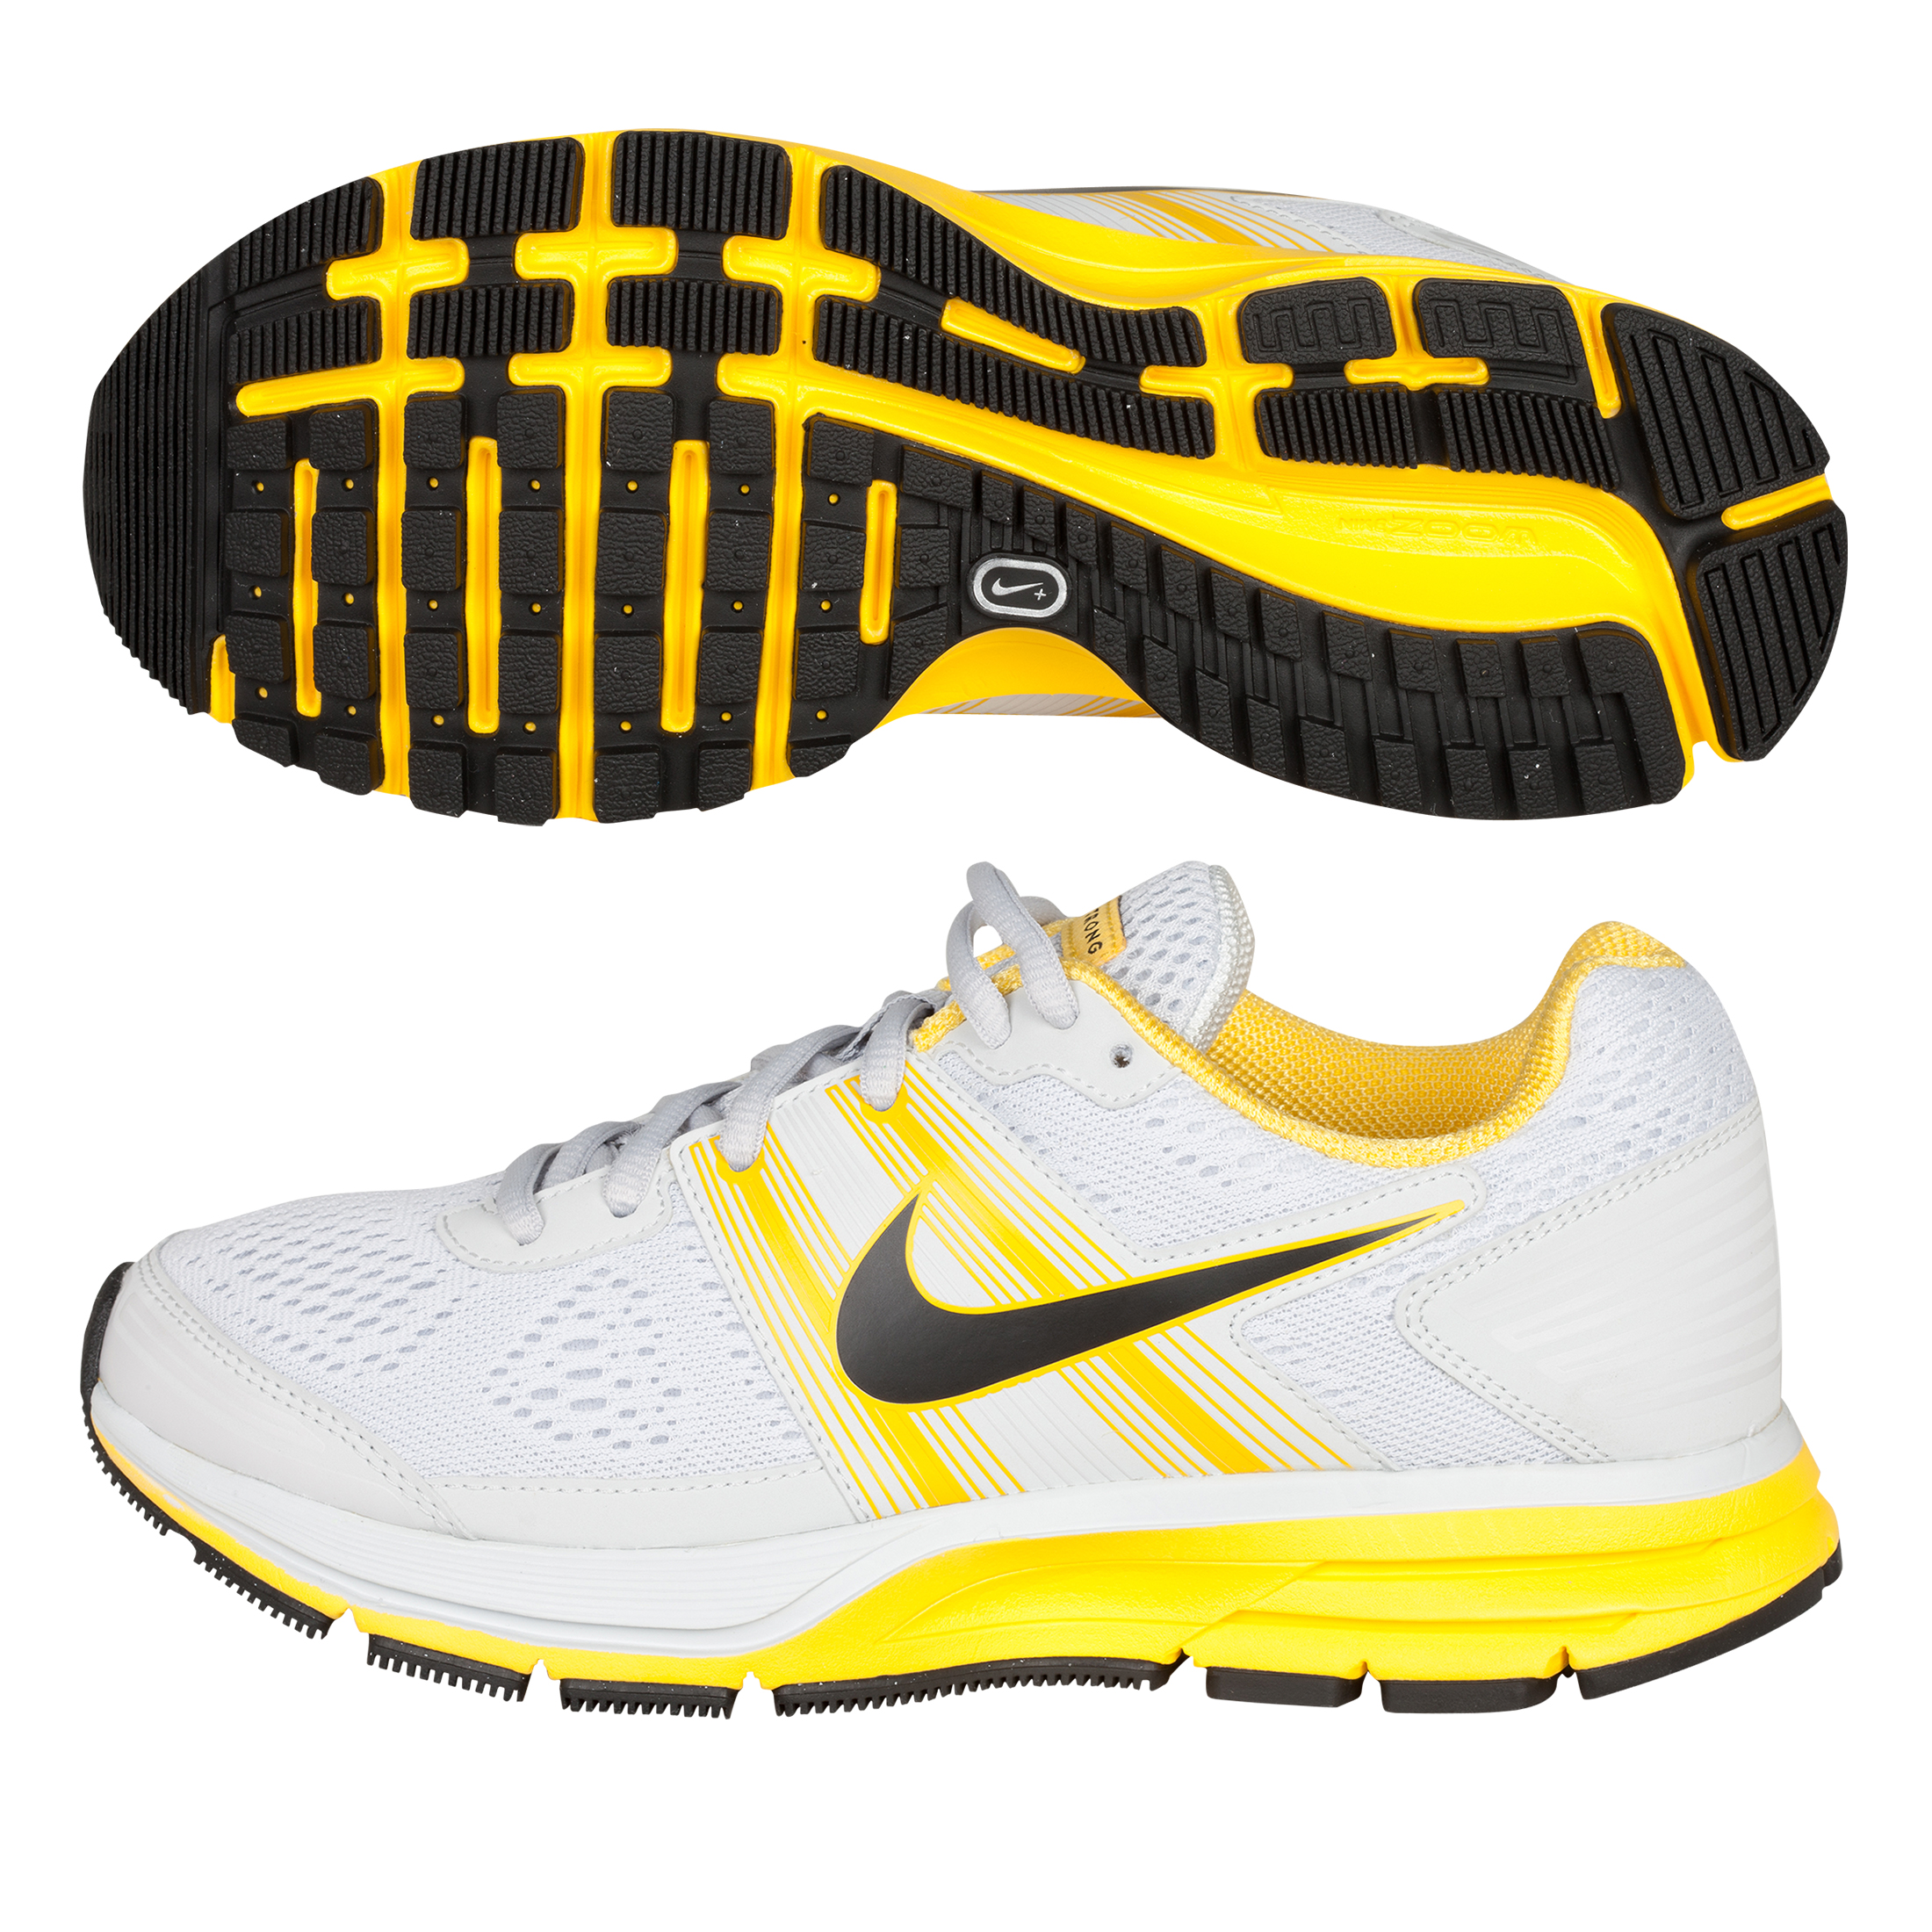 Nike Air Pegasus(+) 29 Trainers - Pure Platinum/Anthracite/Varsity Maize - Womens